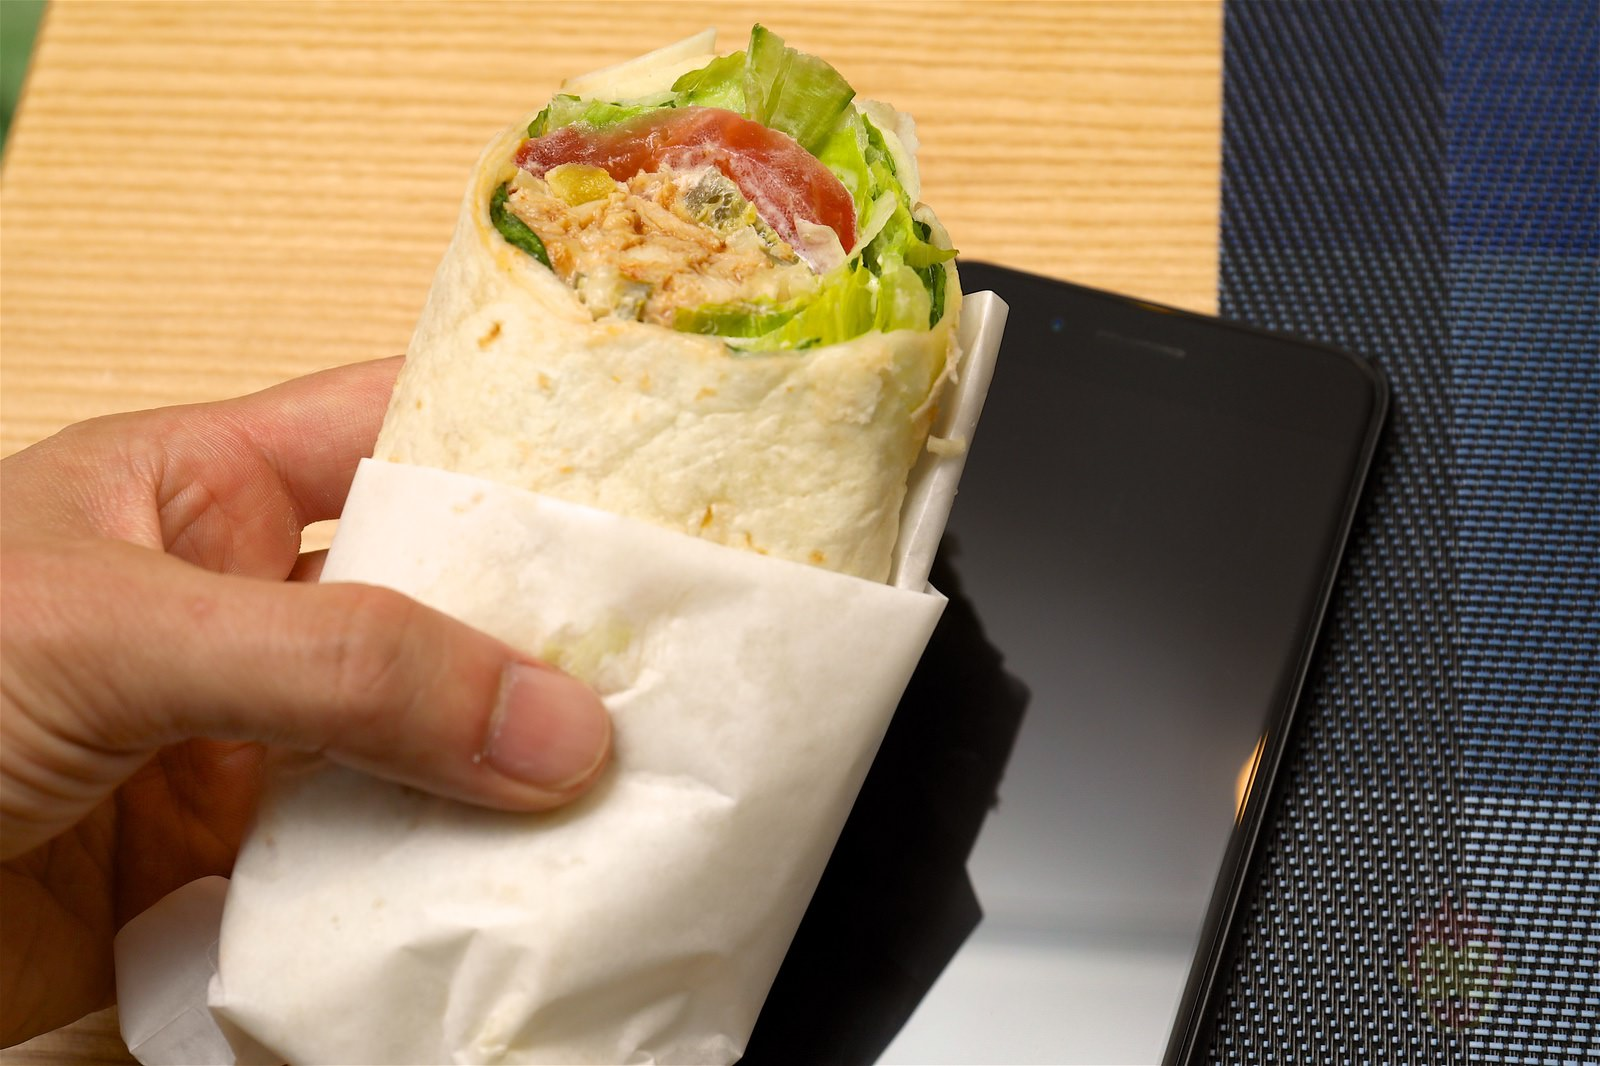 Costco Mexican Wrap 03